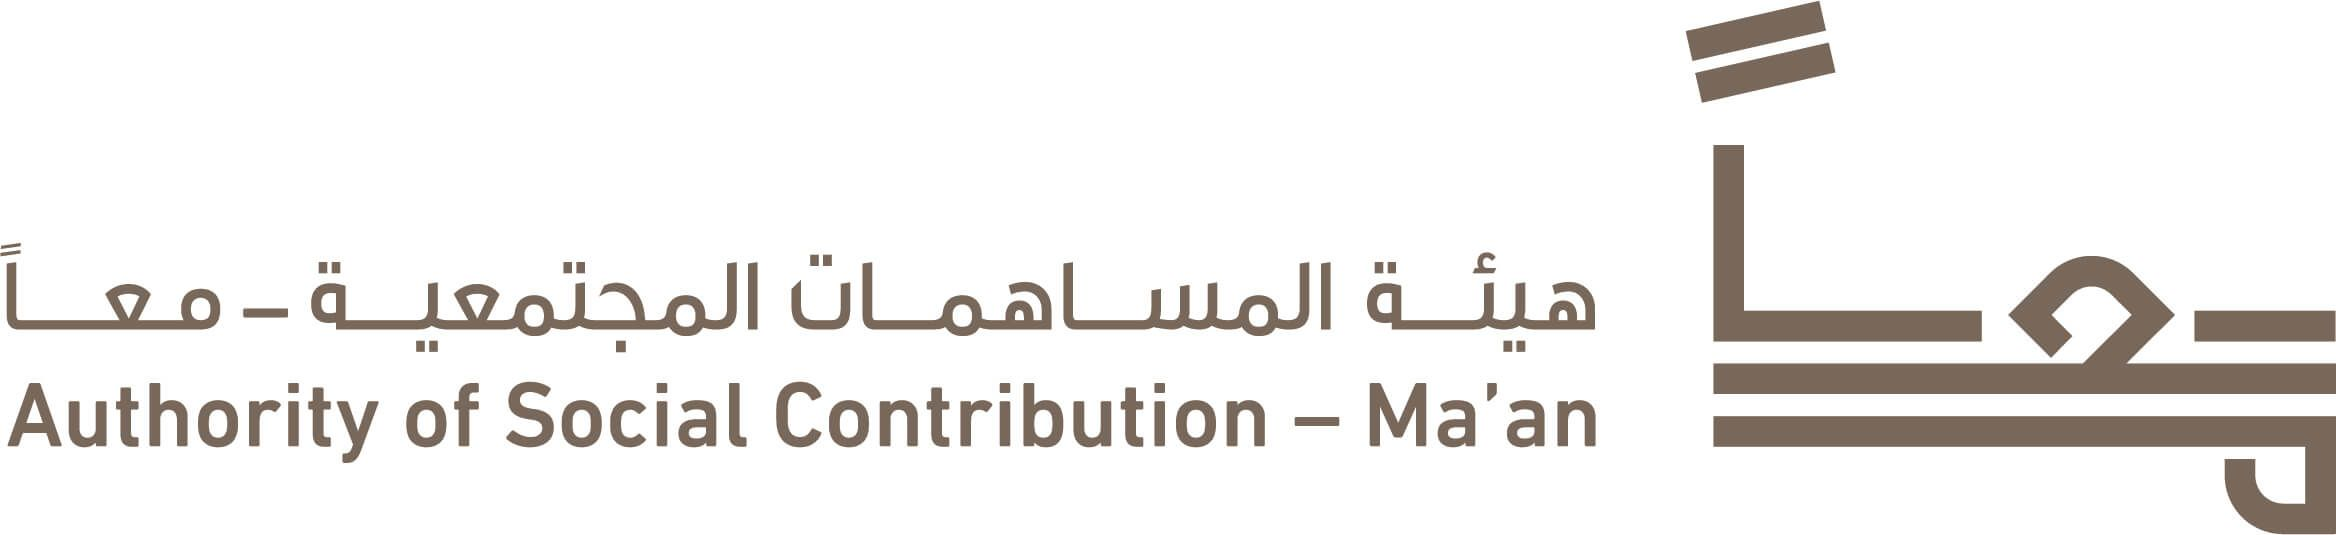 Government Partner - Authority of Social Contribution - Maan